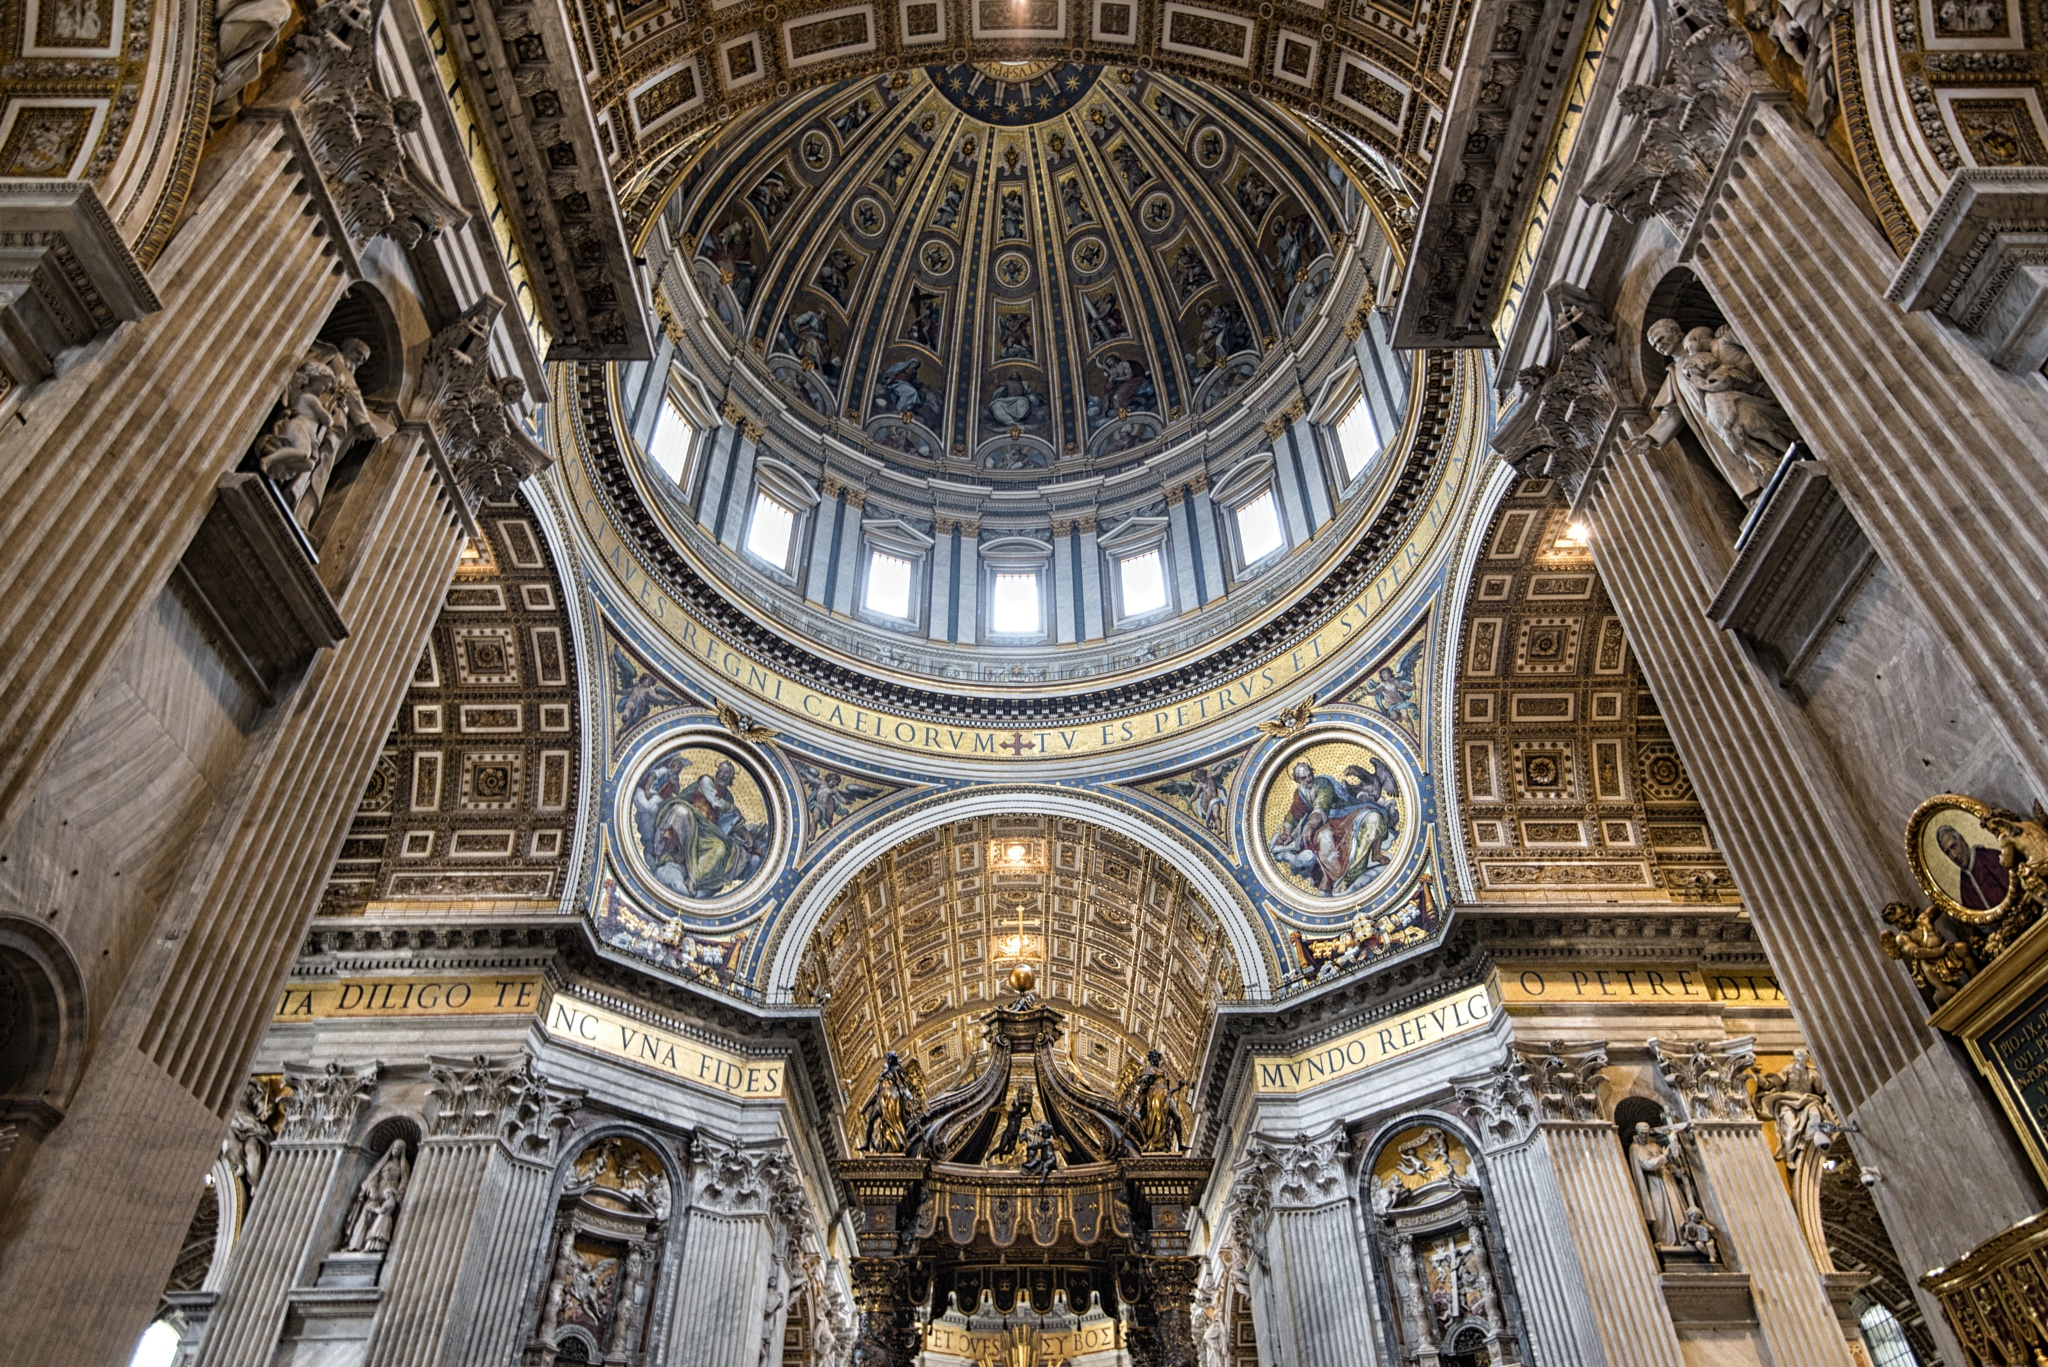 St. Peter's Basilica by Cody Thompson